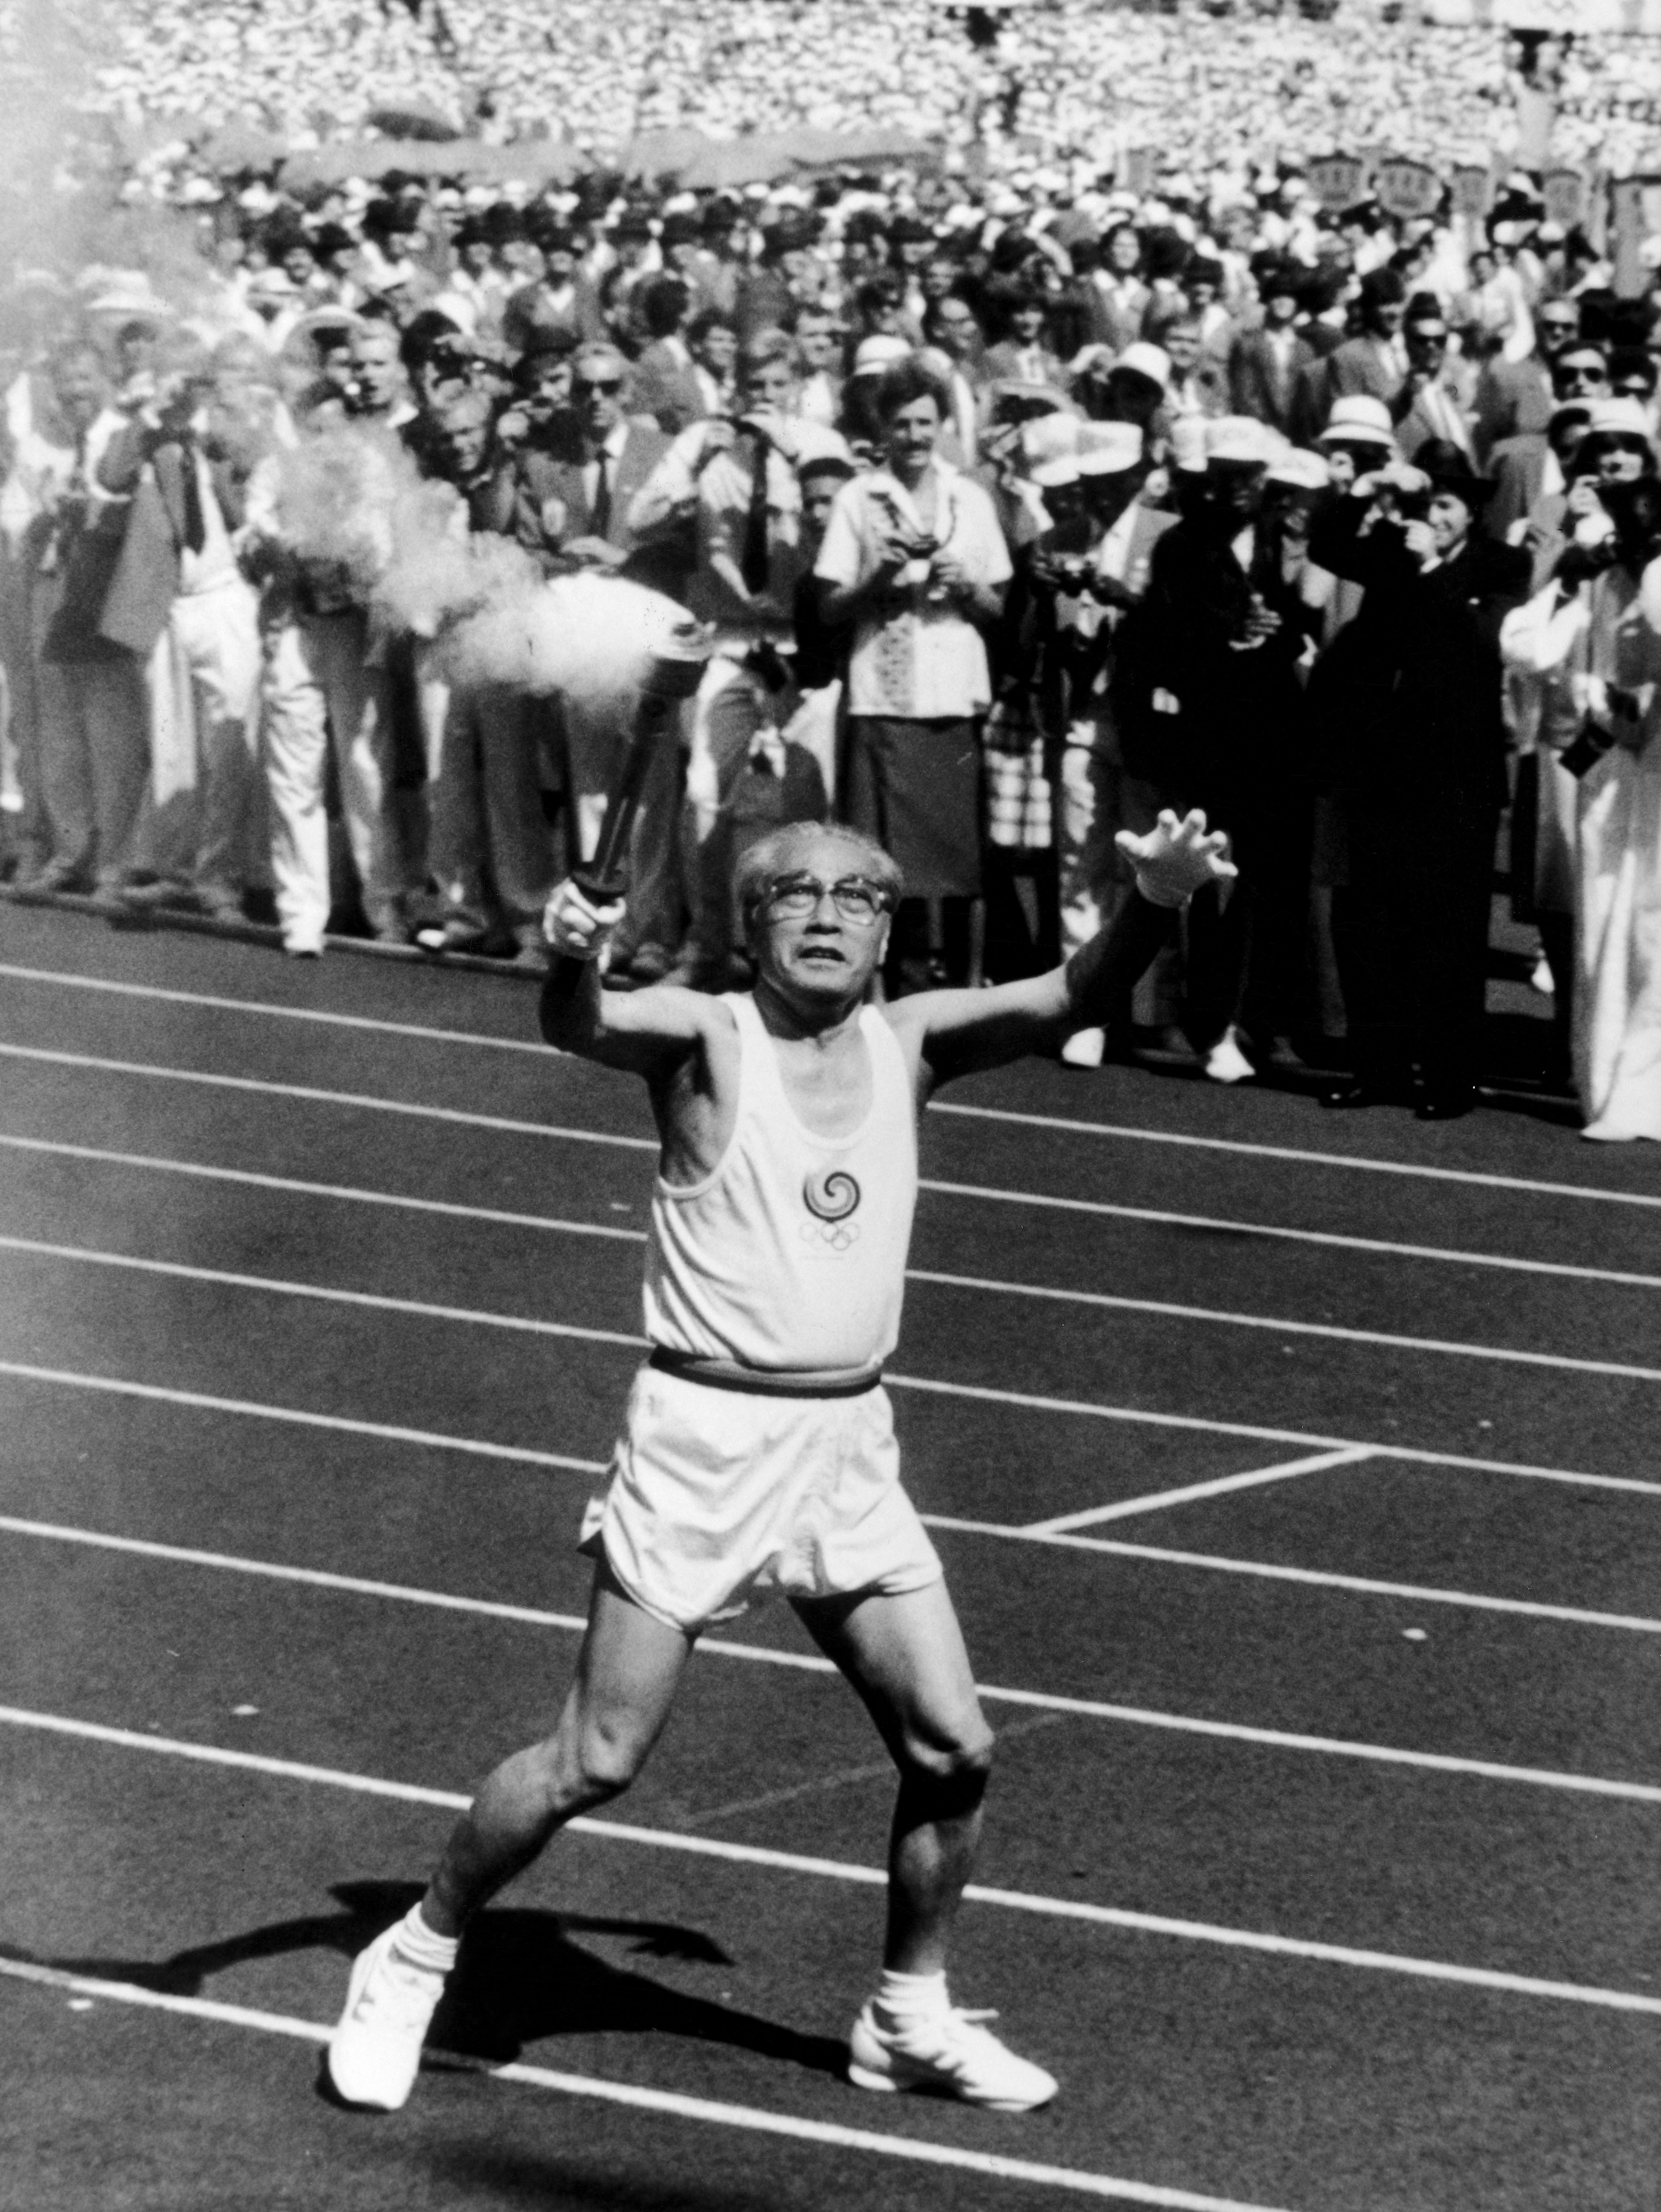 76-year old Sohn Kee Chung, who won the gold medal in the marathon at the 1936 Olympics, carrying the Olympic flame for the 1988 Olympics in South Korea. (Credit: ERMA/Camera Press/Redux)